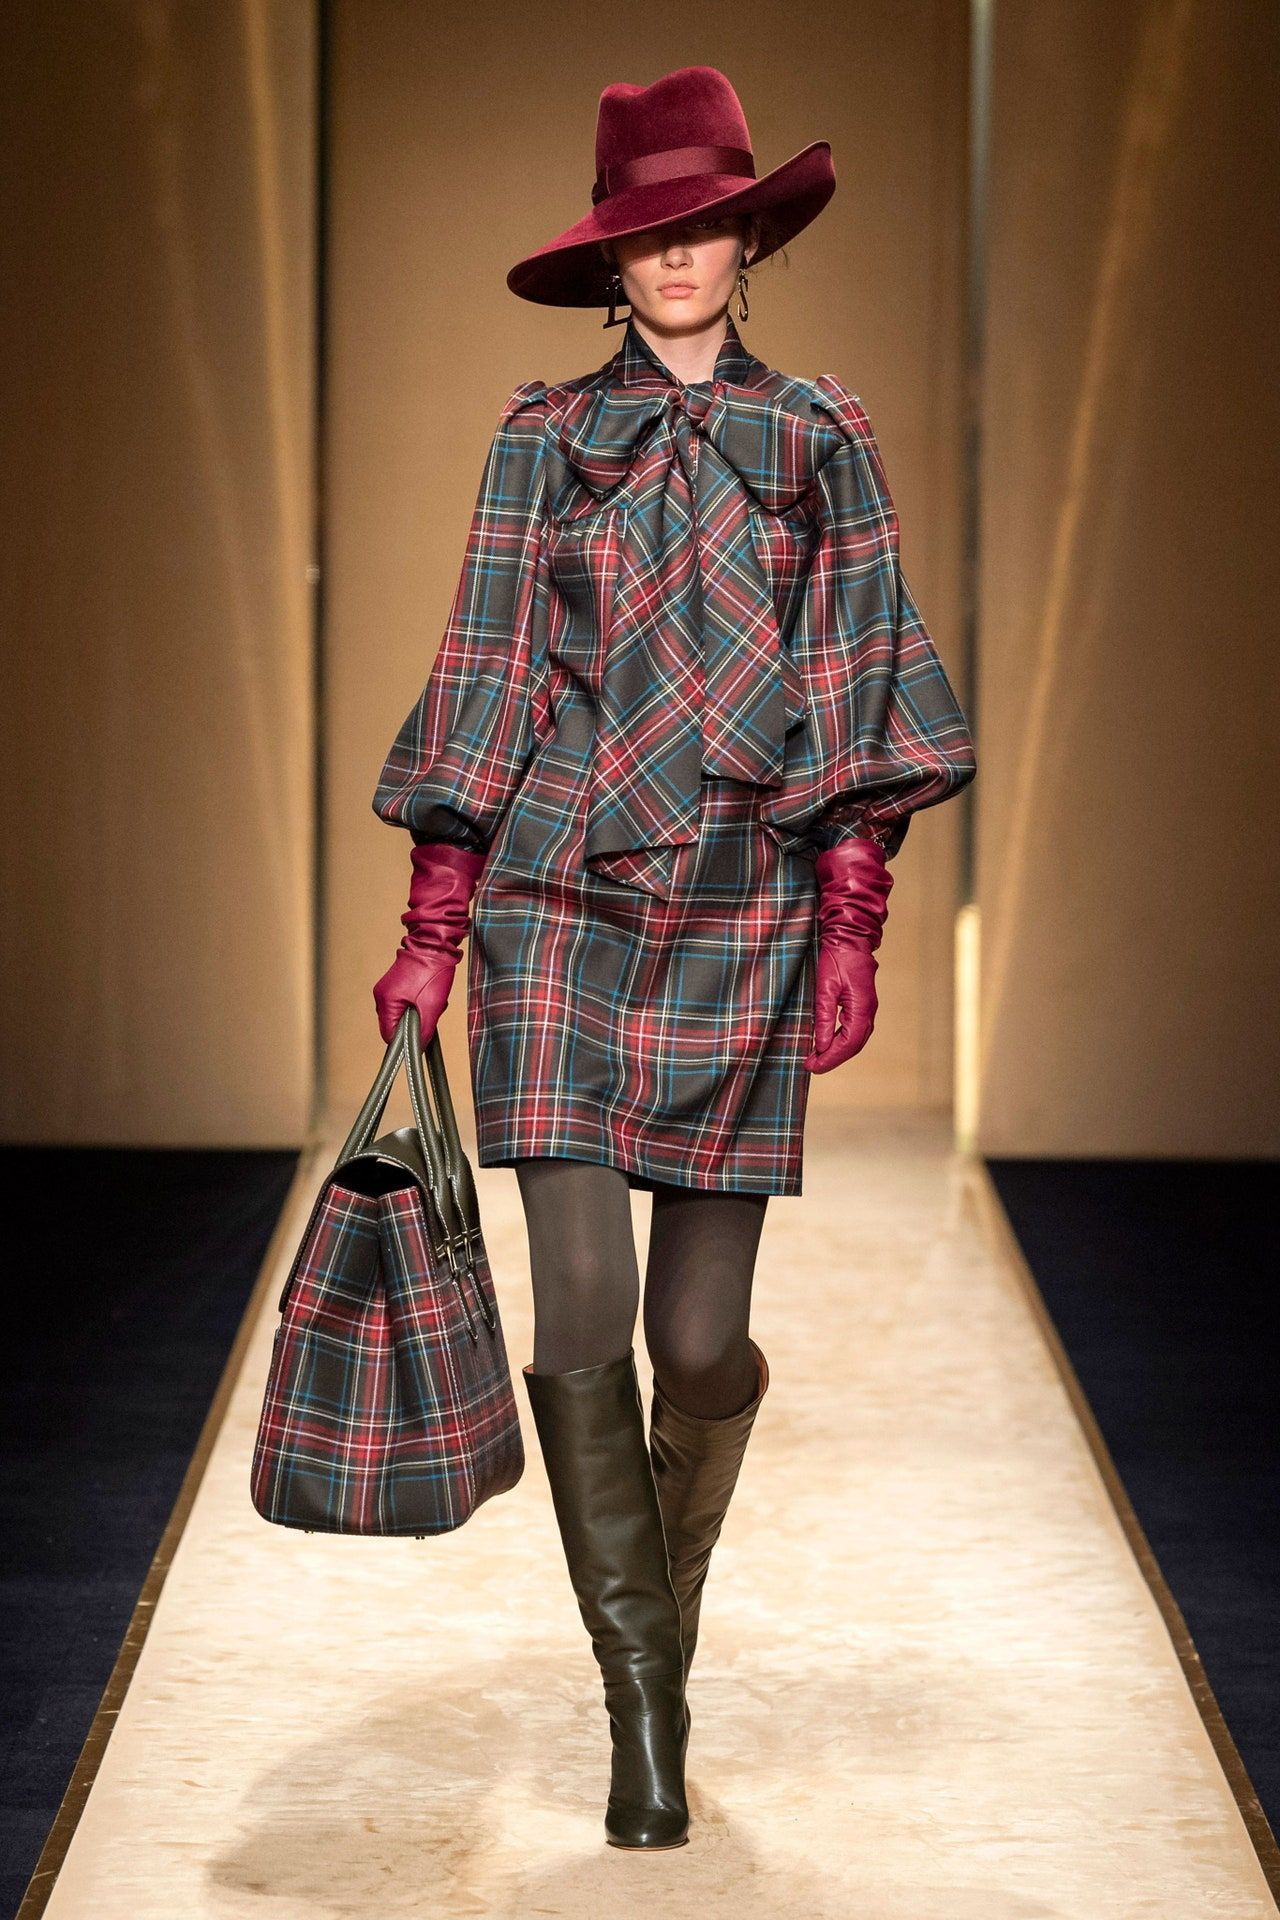 Luisa Spagnoli Ready-To-Wear Fall-Winter 2020-2021 - Fashion Show | Vogue Paris -  Luisa Spagnoli Herbst / Winter 2020-2021 Ready-to-Wear – Fashion Shows | Vogue Germany Luisa Spag - #90sRunwayFashion #FallWinter #Fashion #Luisa #Paris #ReadytoWear #RunwayFashion2020 #RunwayFashionaesthetic #RunwayFashionchanel #RunwayFashioncrazy #RunwayFashiondior #RunwayFashiondresses #RunwayFashionvogue #RunwayFashionwomen #Show #Spagnoli #Vogue